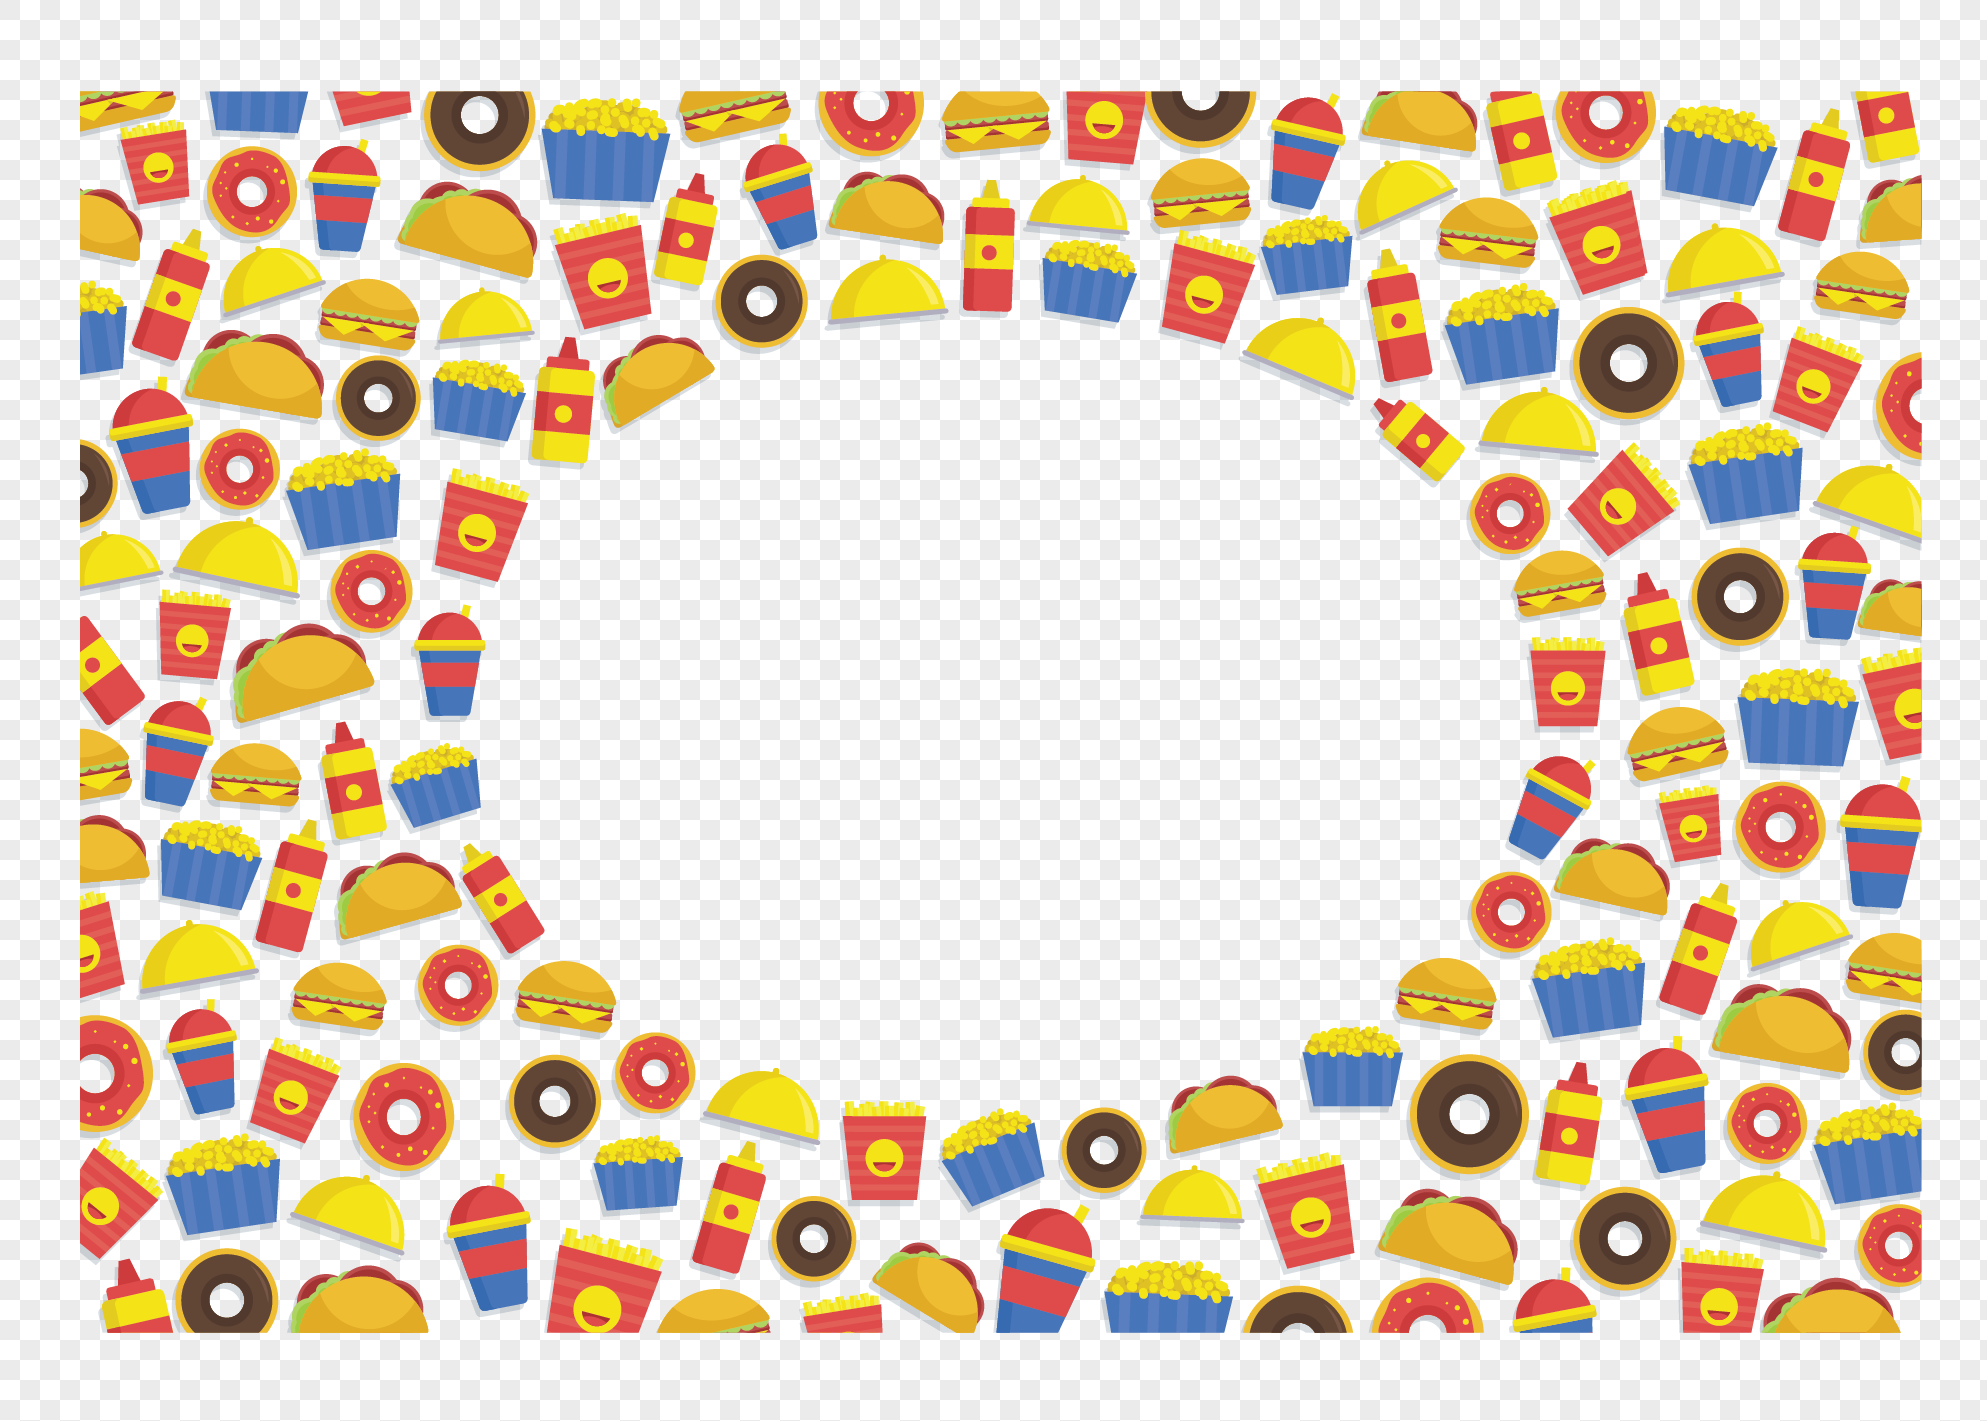 color cartoon fast food border png image picture free download